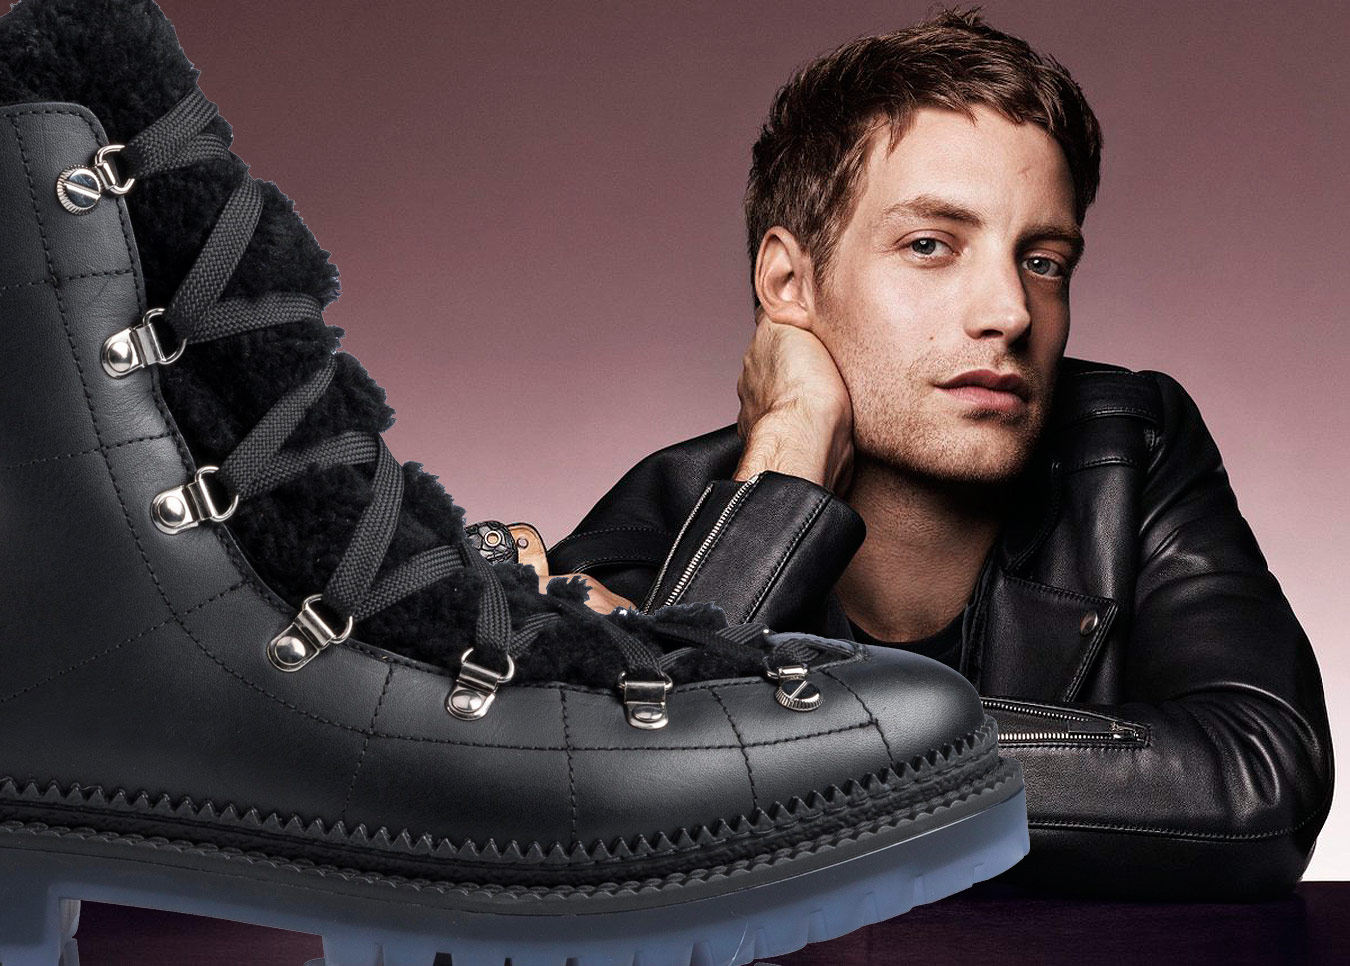 When The Shoe Fits: Jimmy Choo AW 2016 Men's Campaign With James Jagger